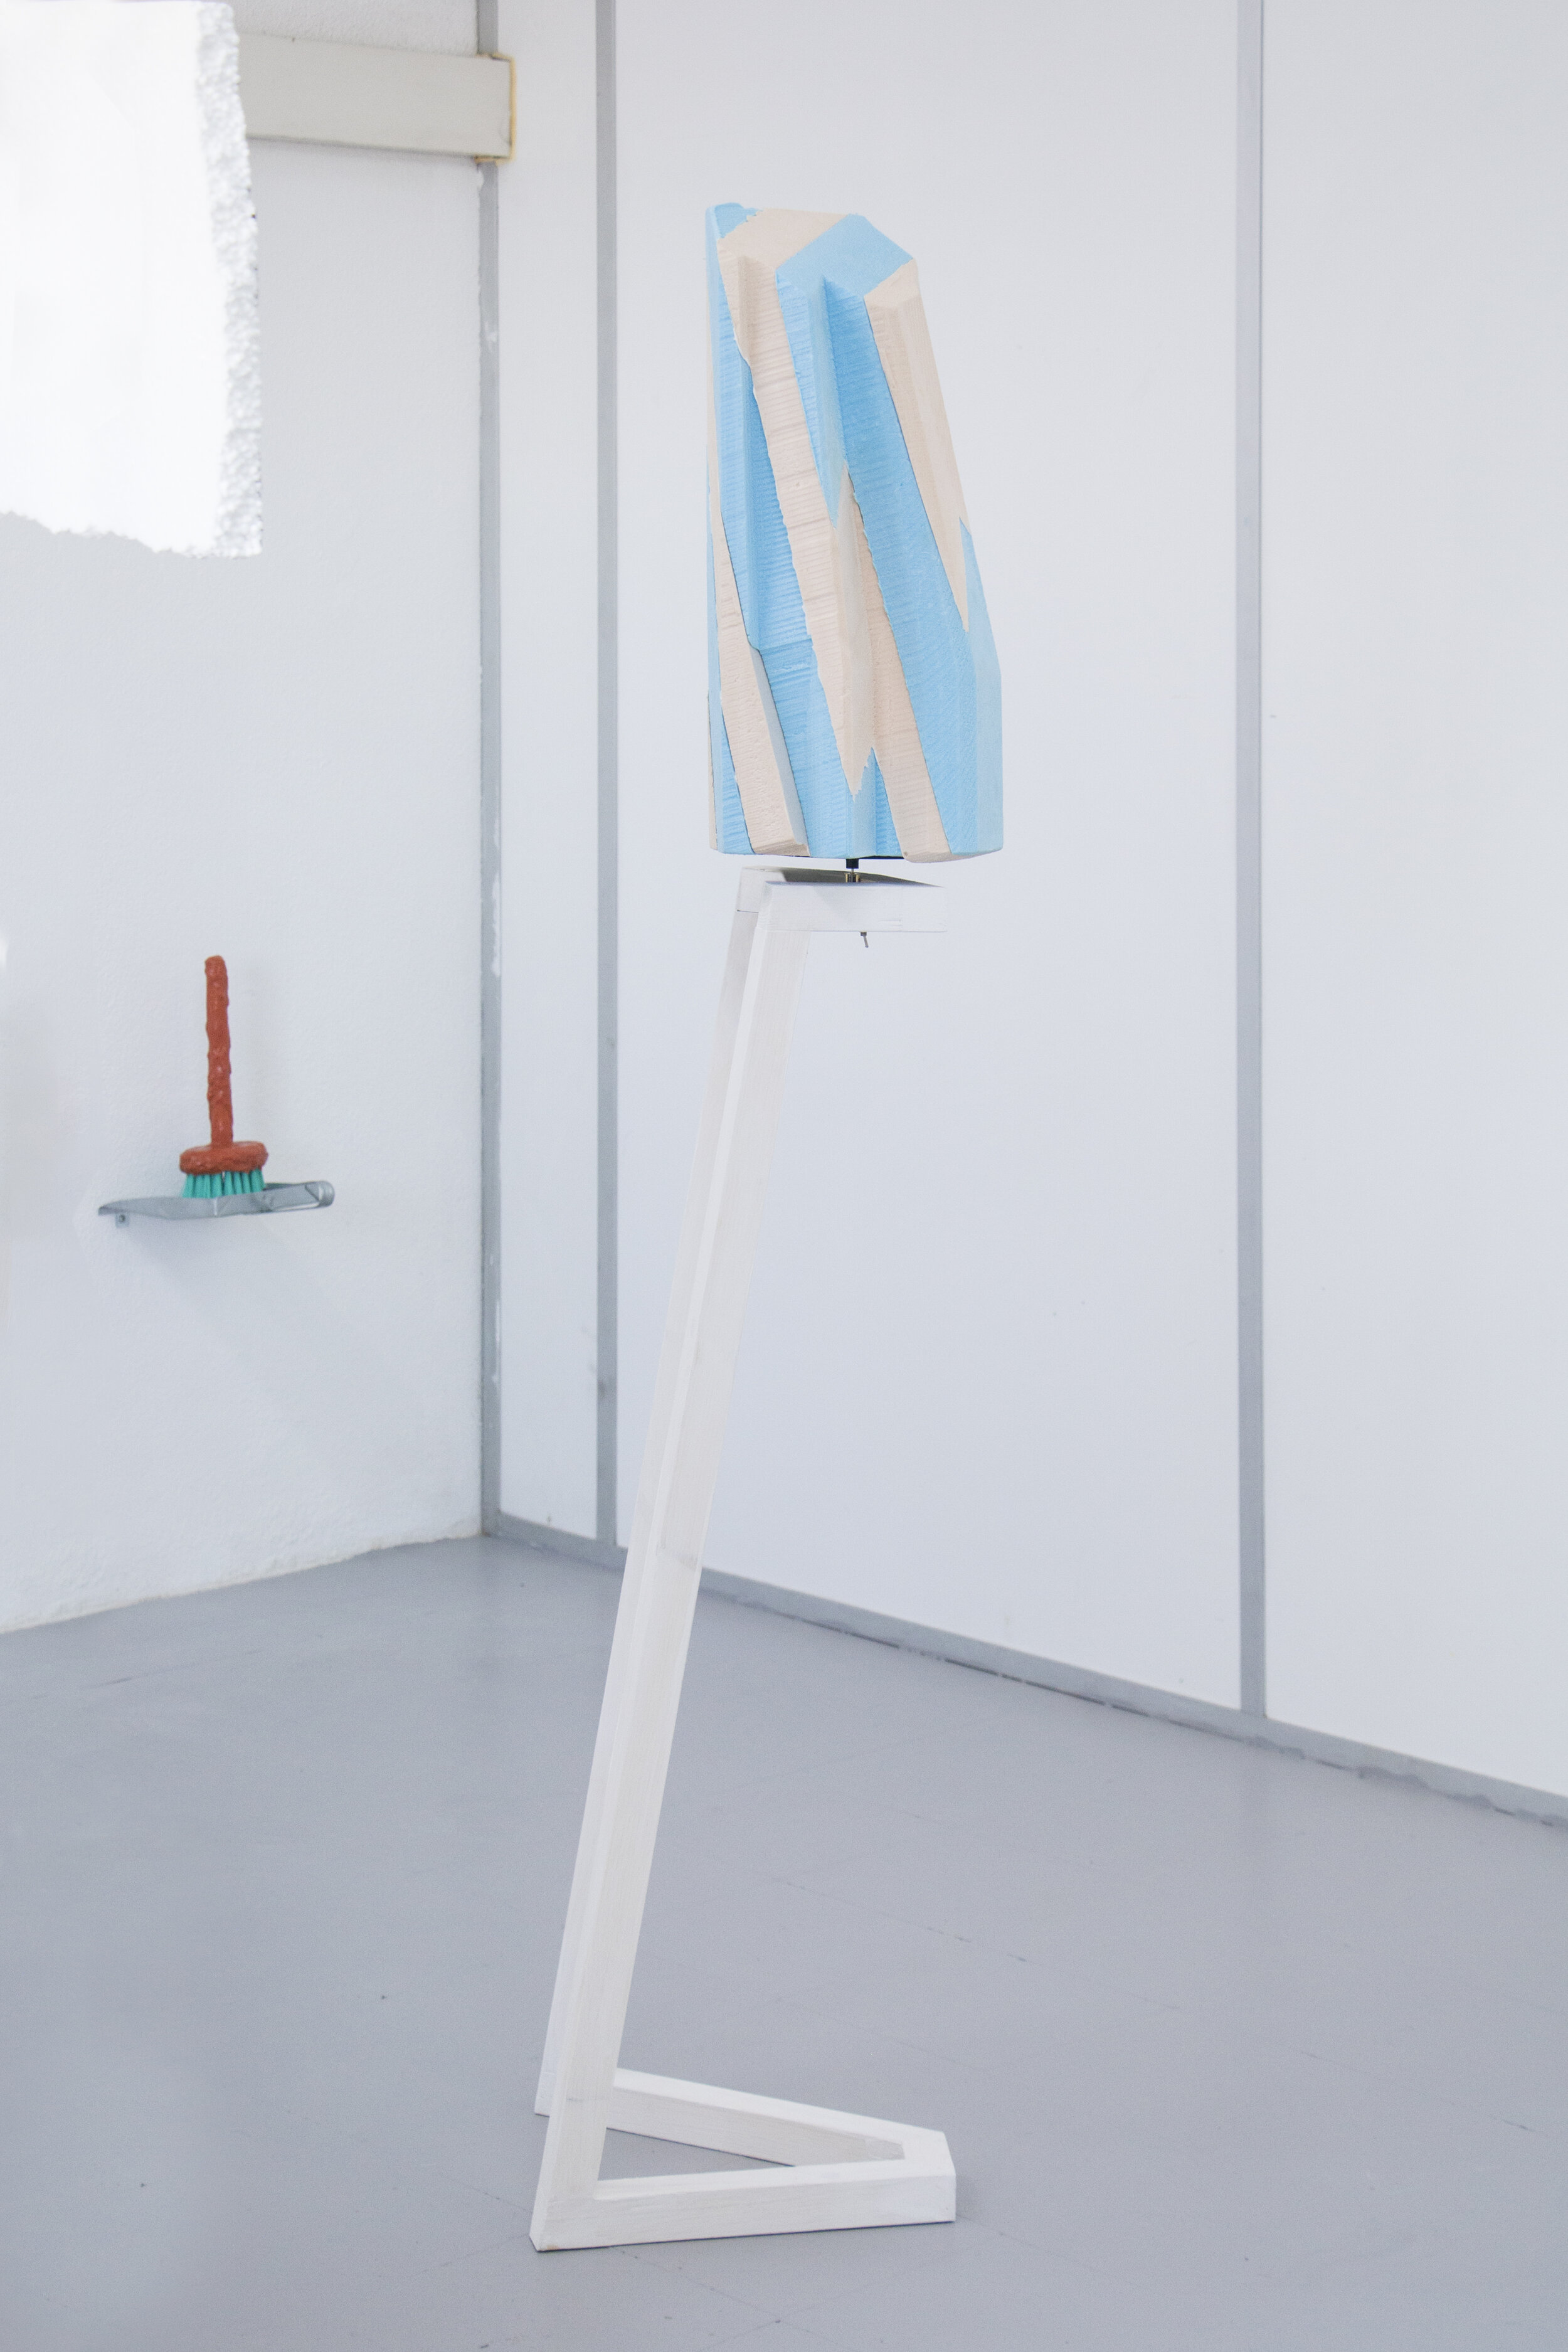 Ti Prendo in Giro,  2019 Extruded Polystyrene (XPS) mounted on pine wood with engine 165 x 35 x 35 cm